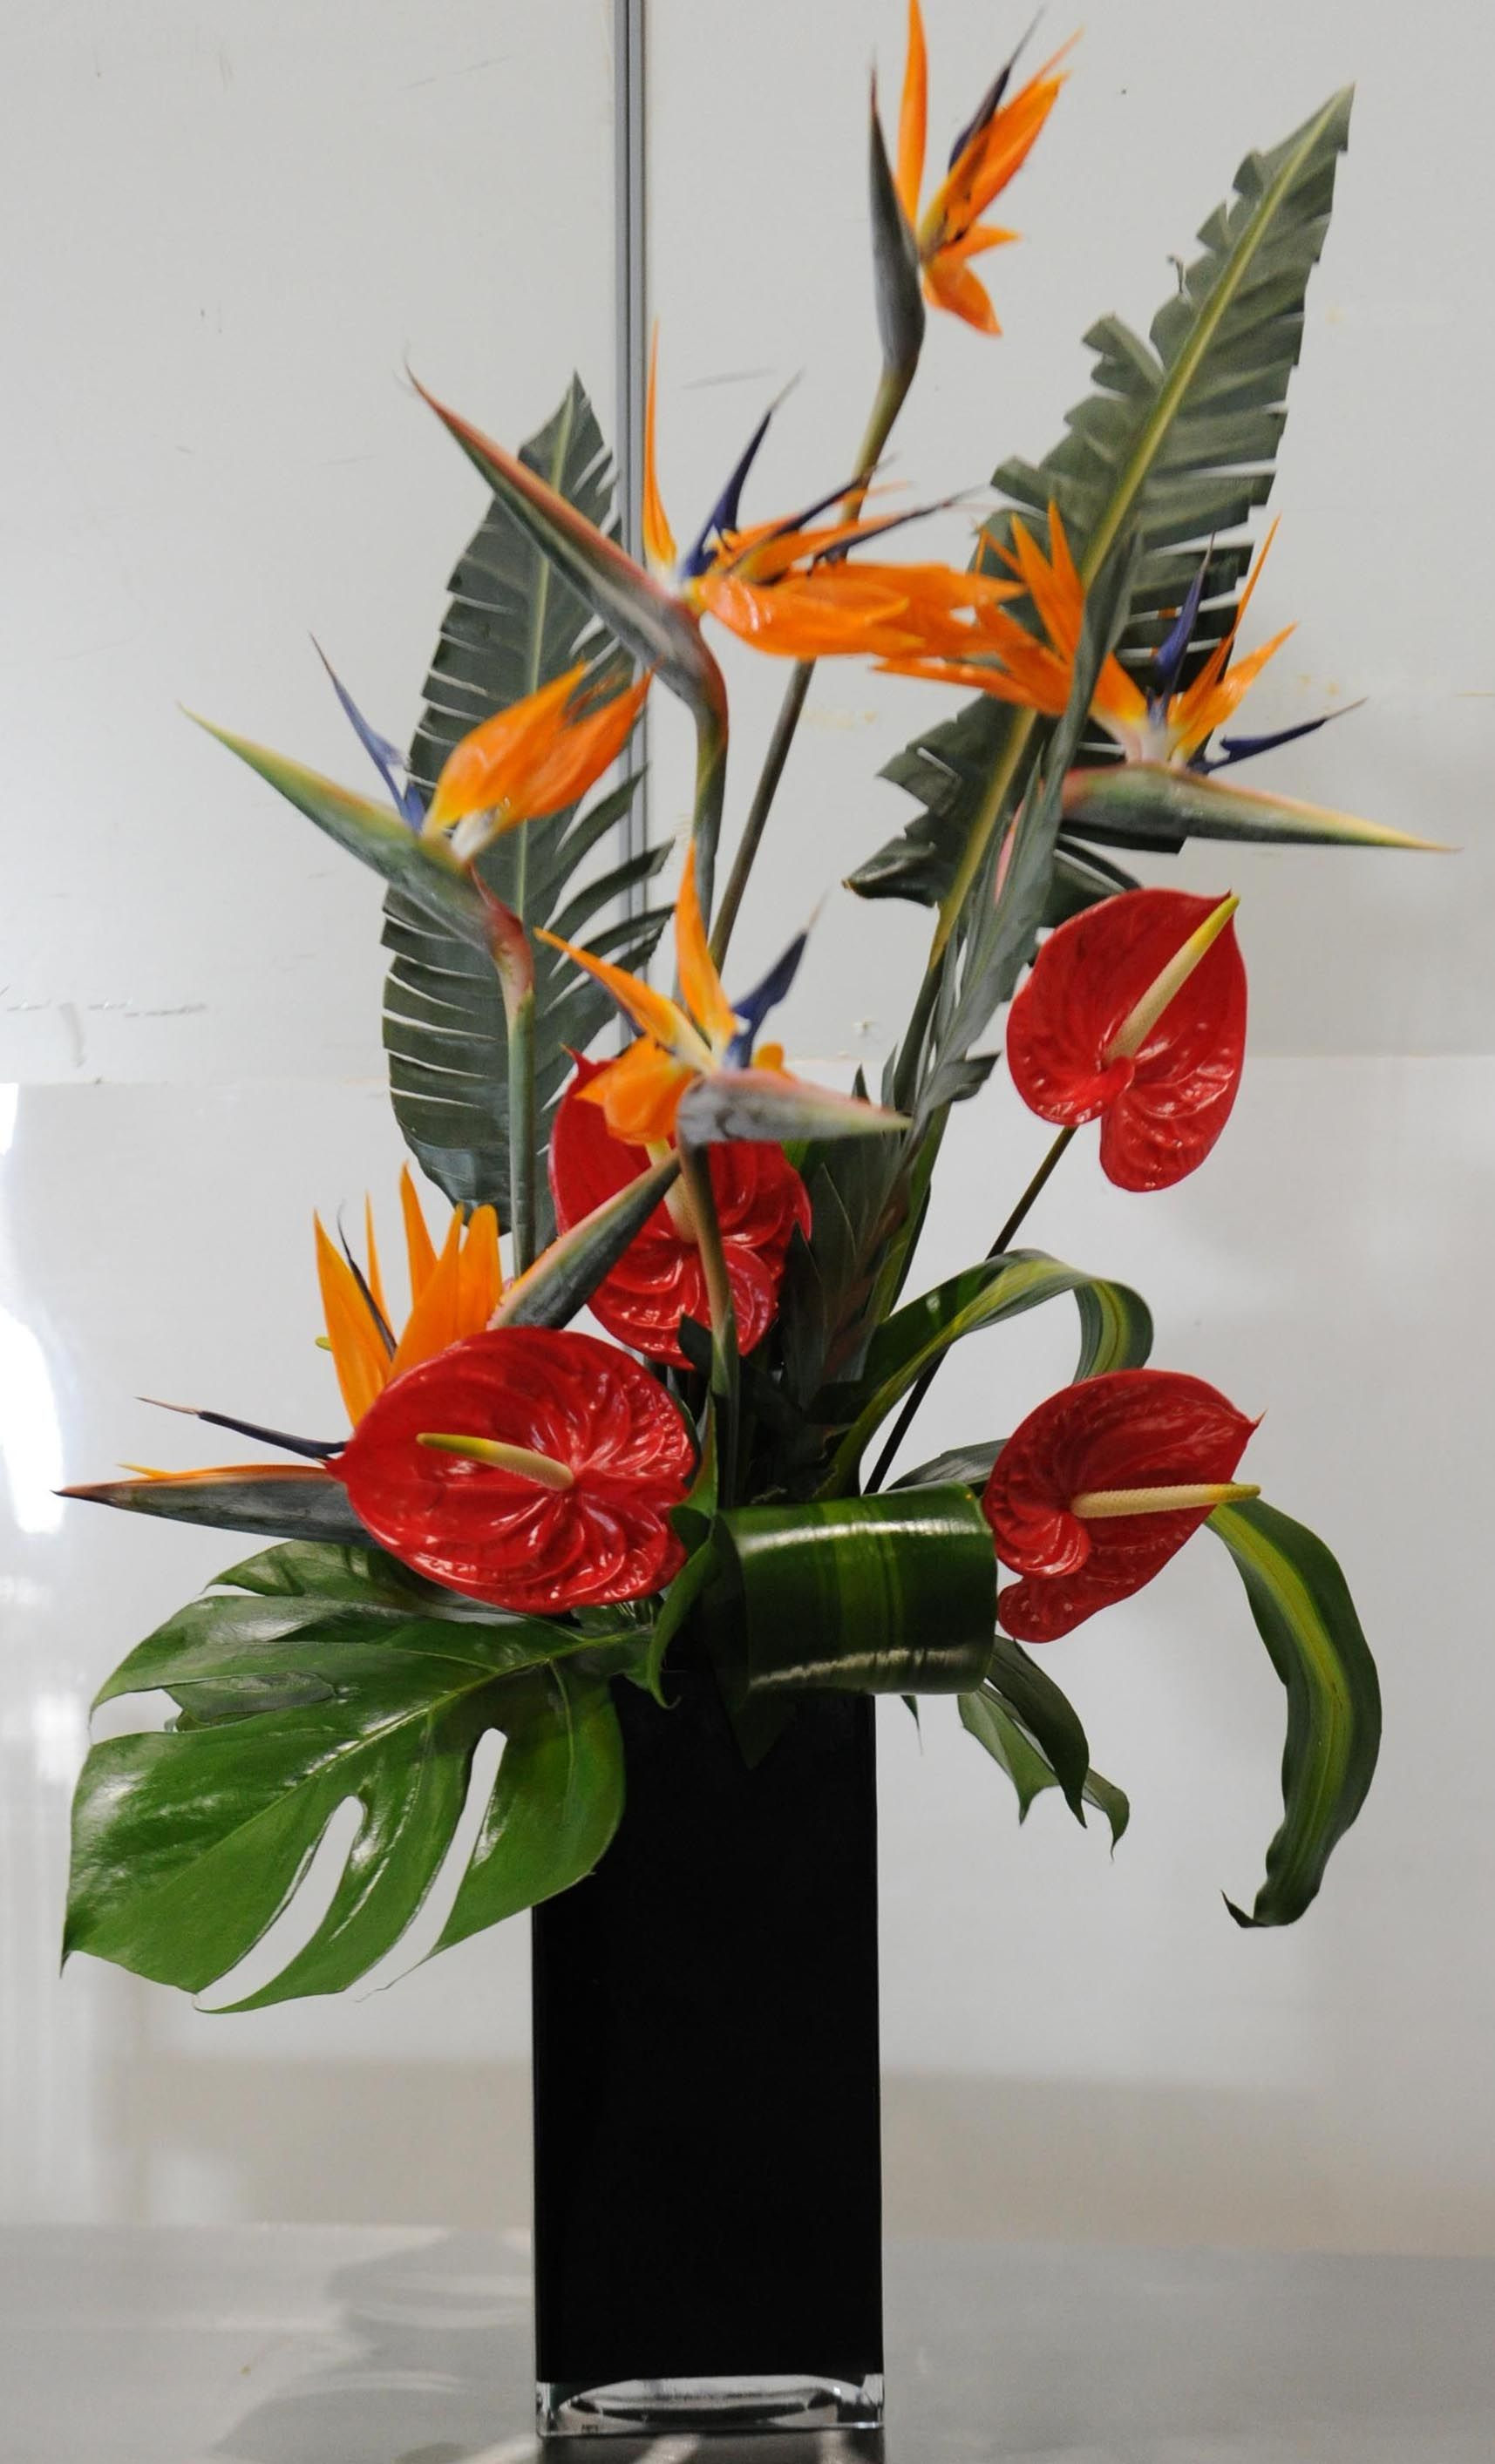 cheap ikebana vases of 60 od bird of paradise red anthurium mixed foliage misc throughout 60 od bird of paradise red anthurium mixed foliage